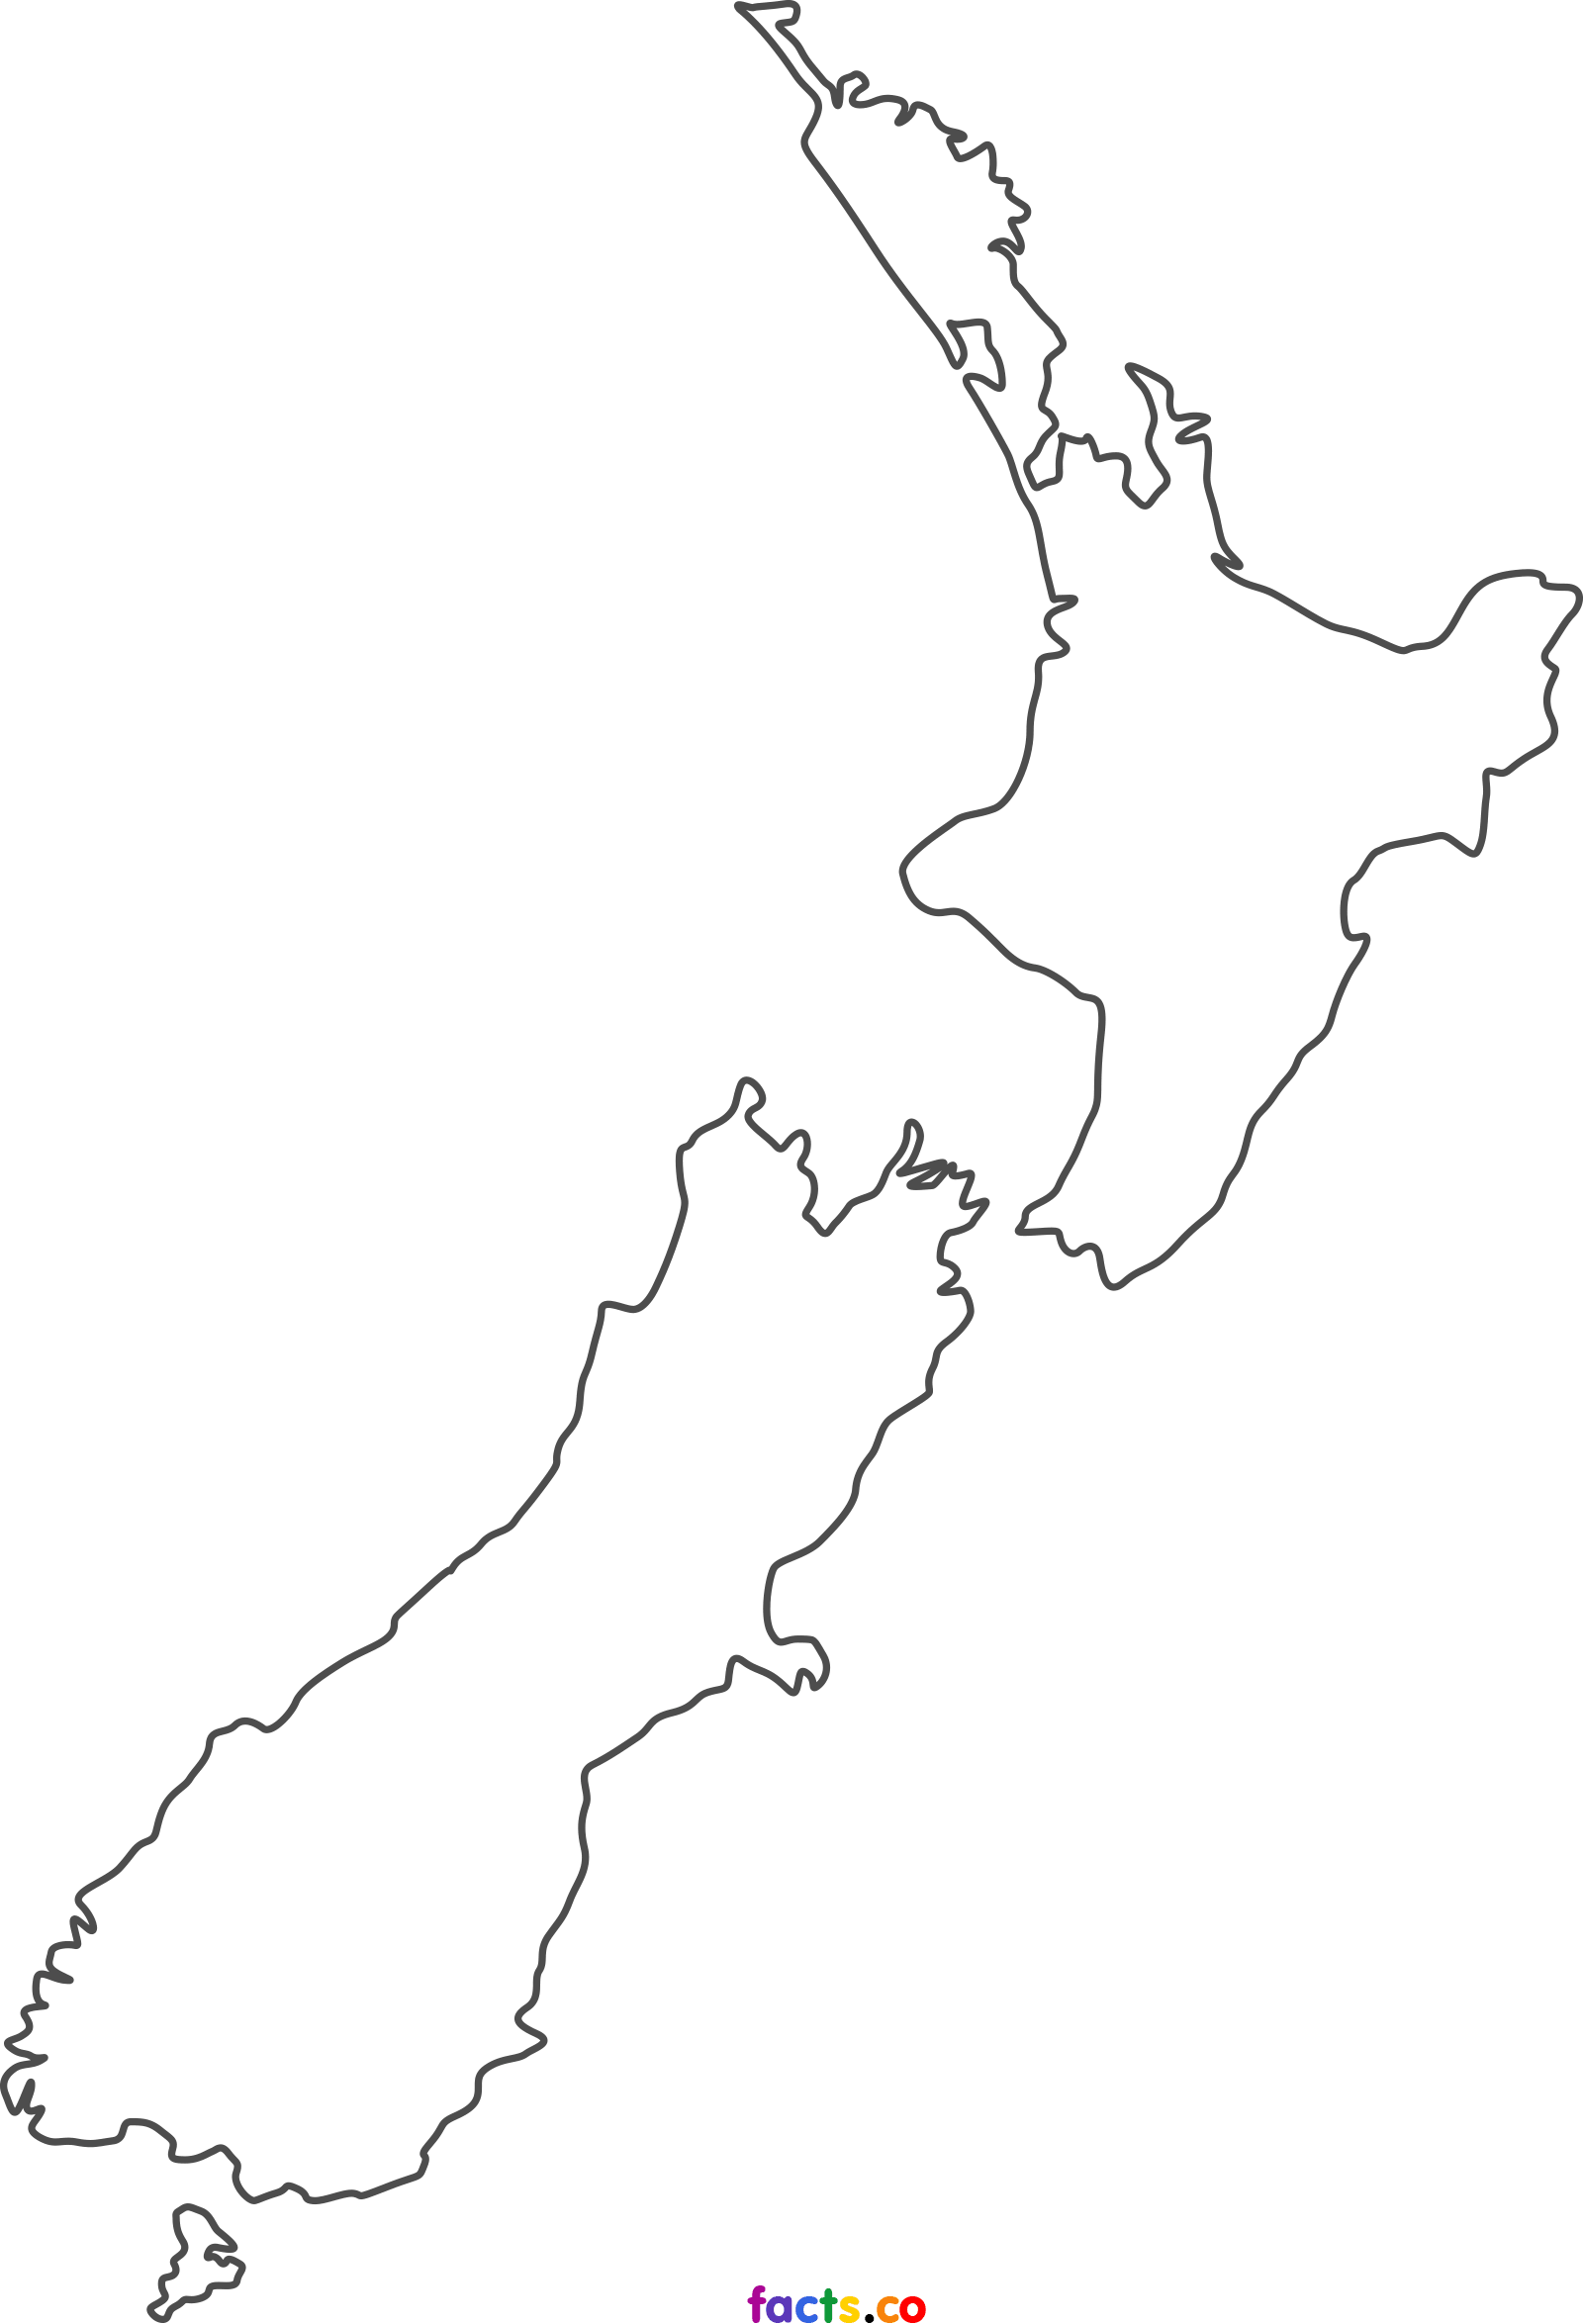 Blank drawing black and white. New zealand map political